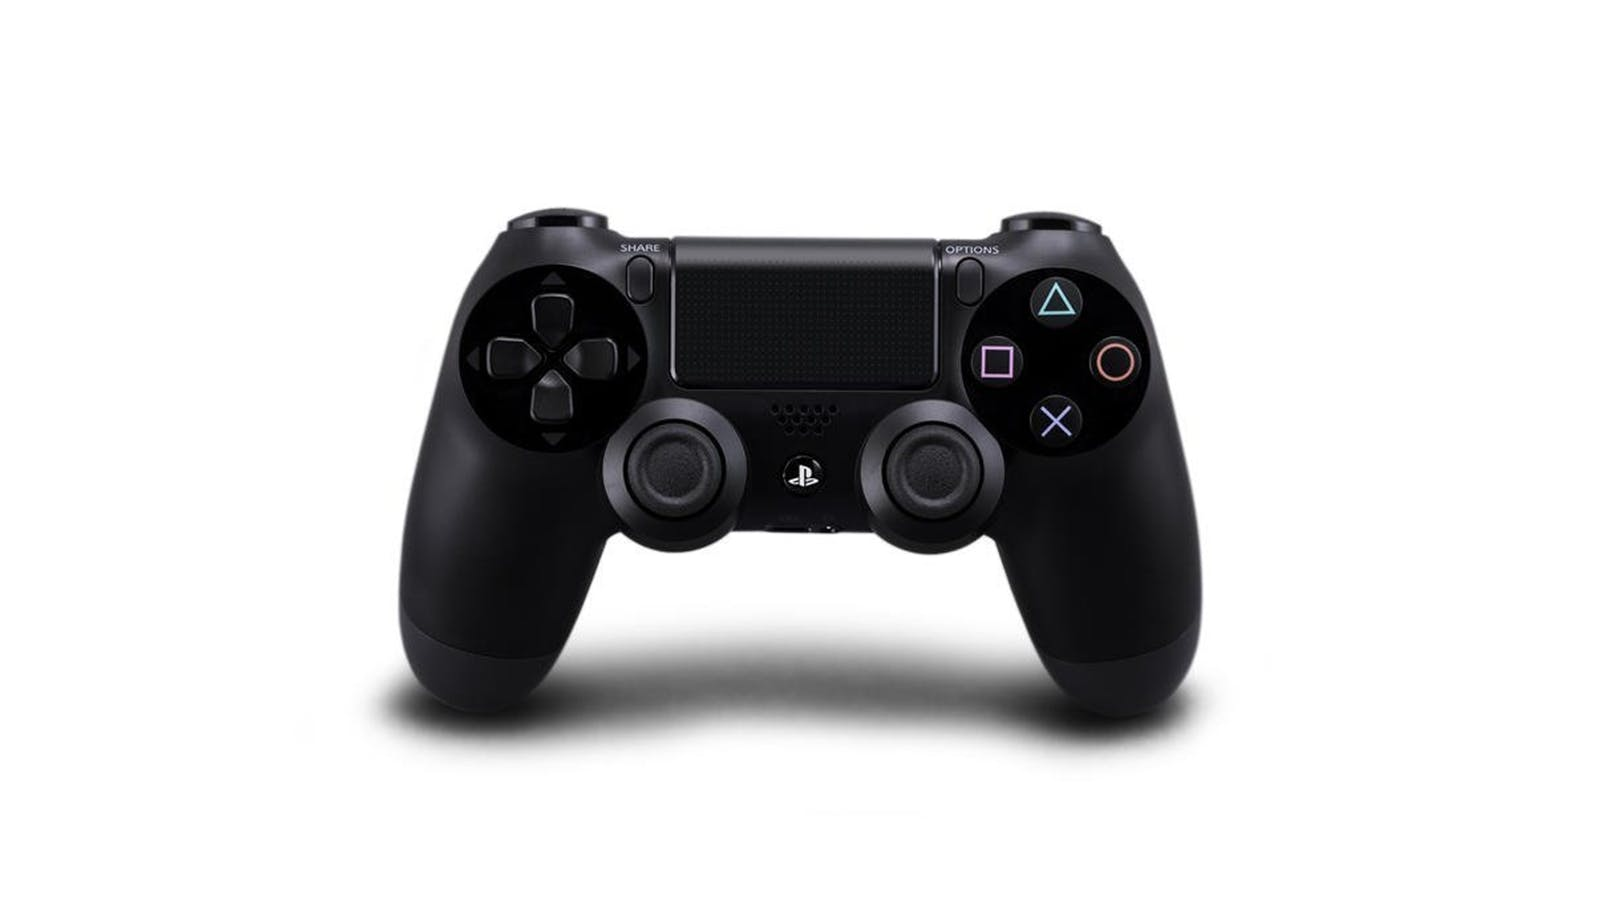 Home :: Computing :: Games Hub :: Gaming Accessories :: PlayStation  Accessories :: Sony BK-CUH-ZCT2G PS4 DualShock 4 Wireless Controller